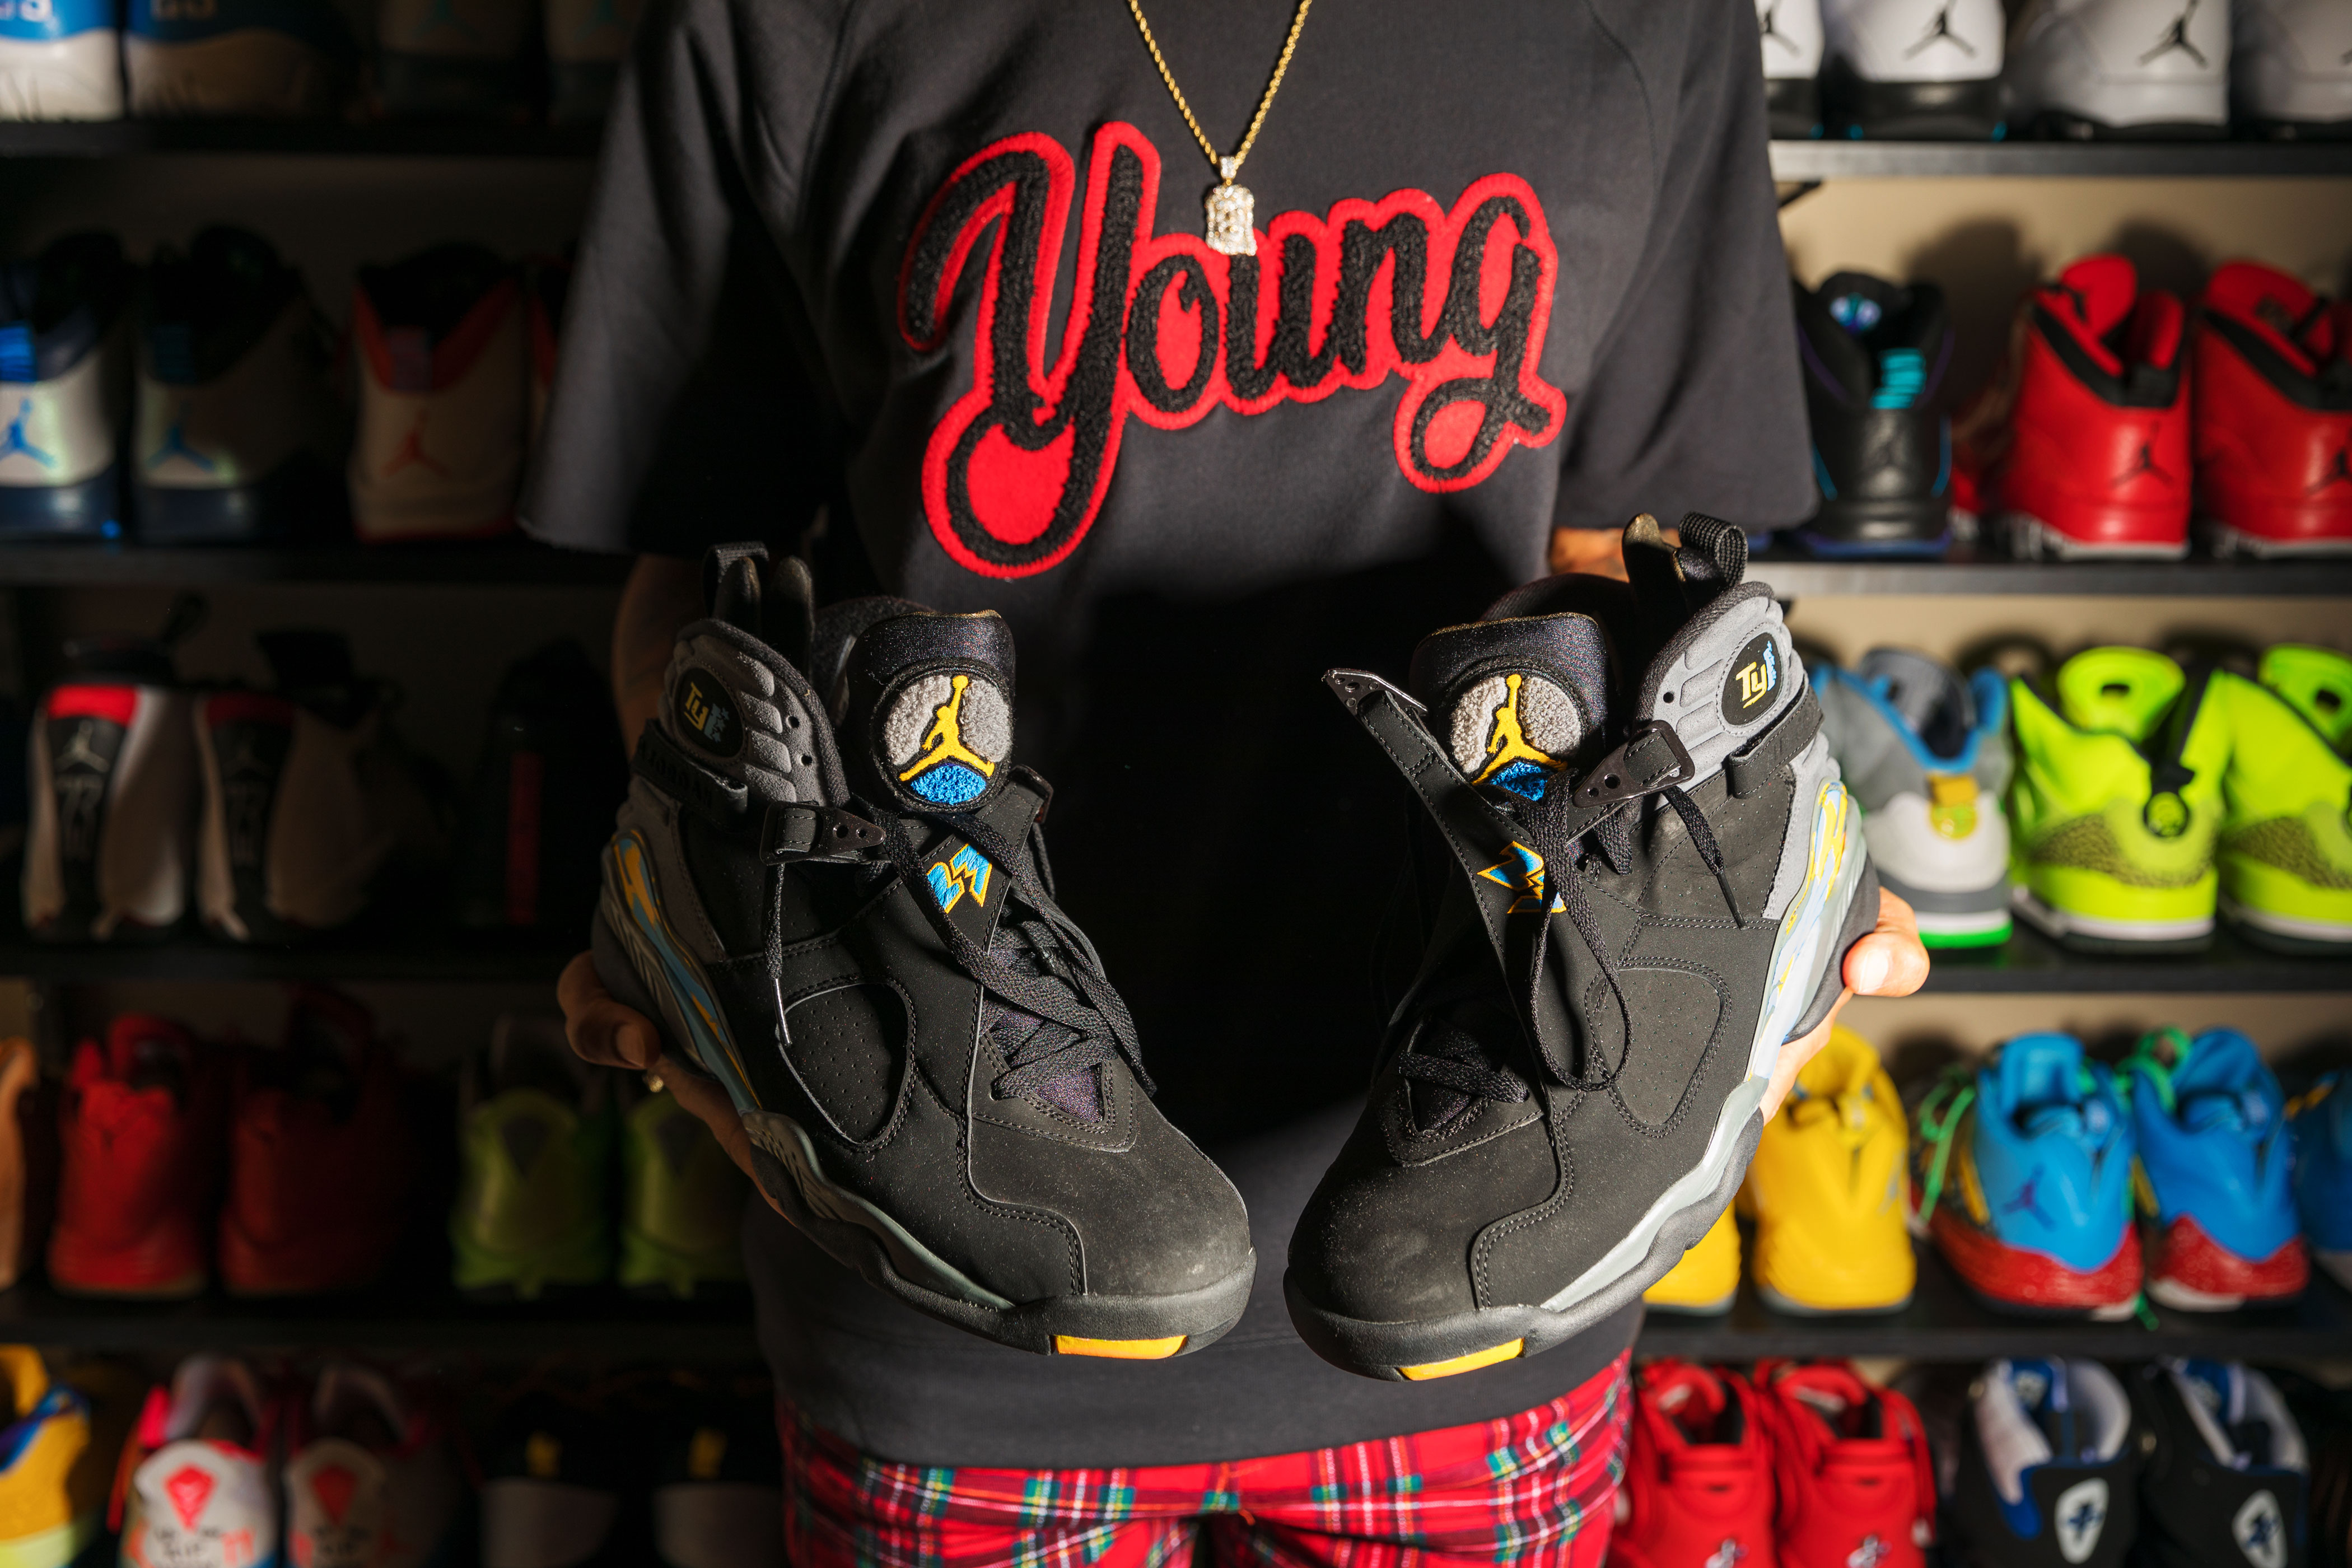 43b7e42e4039da TY Young holds up a pair of Jordans in her Atlanta home. She and Michael  Jordan share a hometown (Wilmington